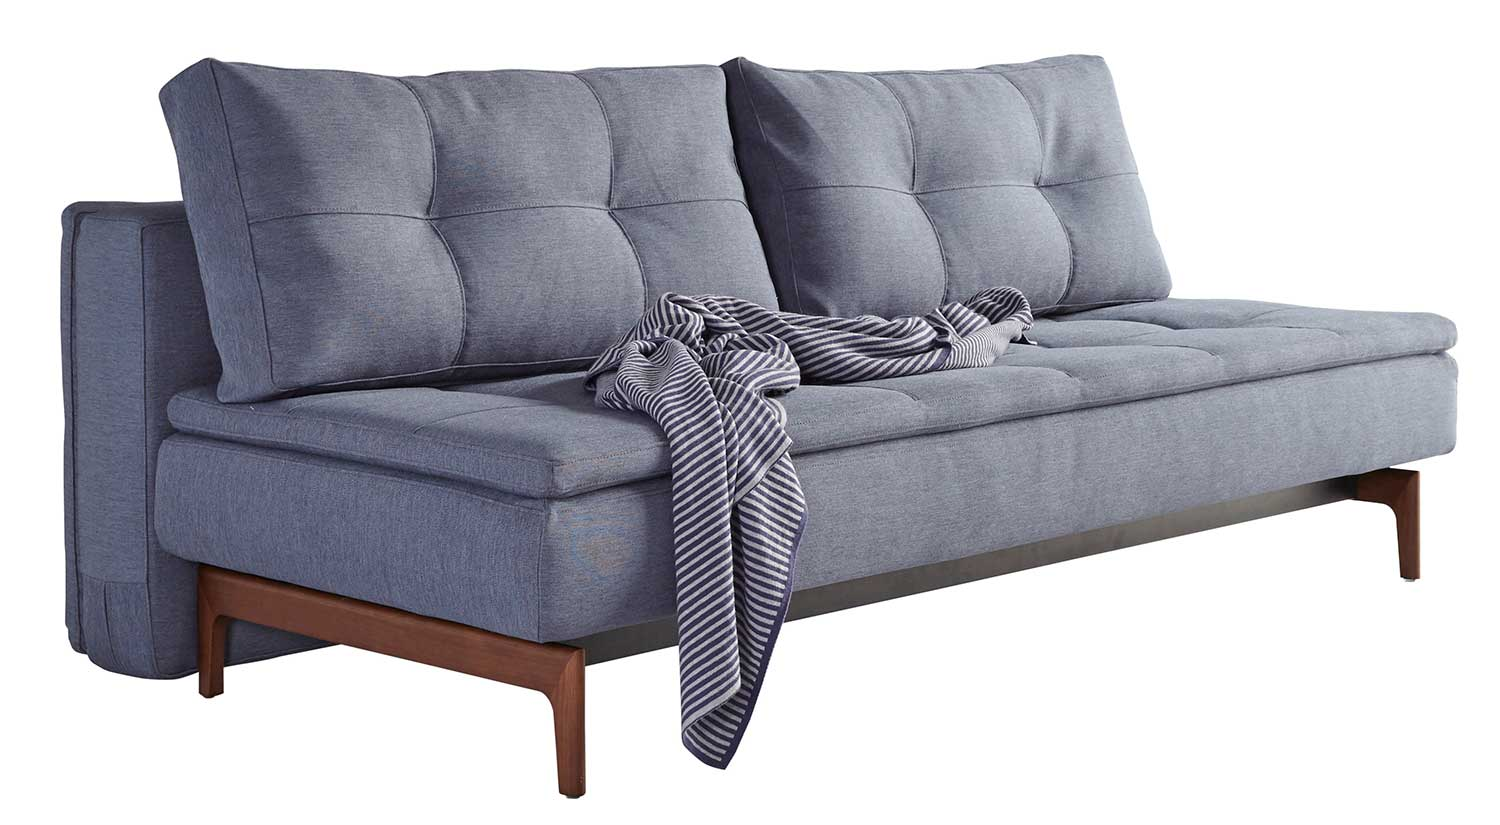 circle sectional sofa bed la z boy tamla 2 seater power recliner semi sofas decoration for